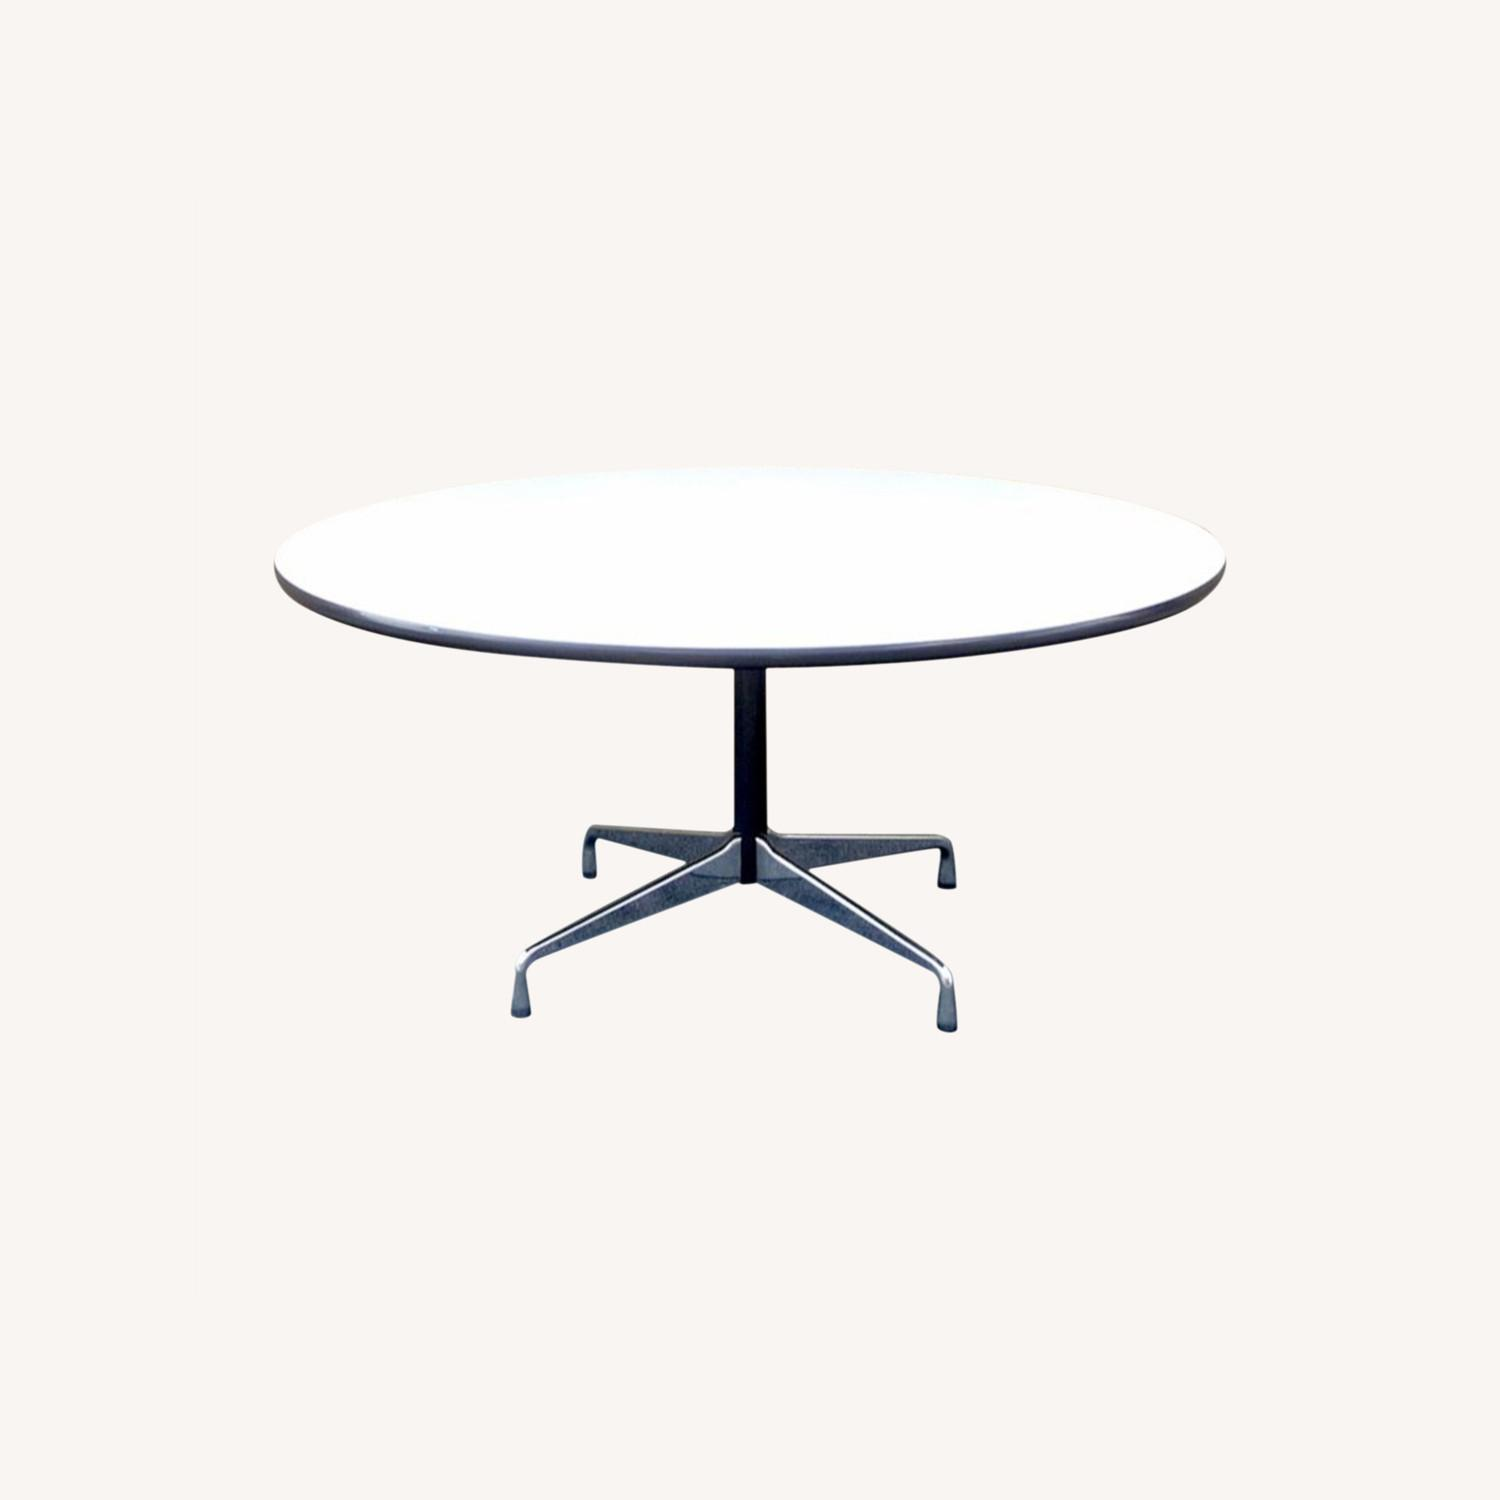 Herman Miller Eames Dining Table 54inches - image-0